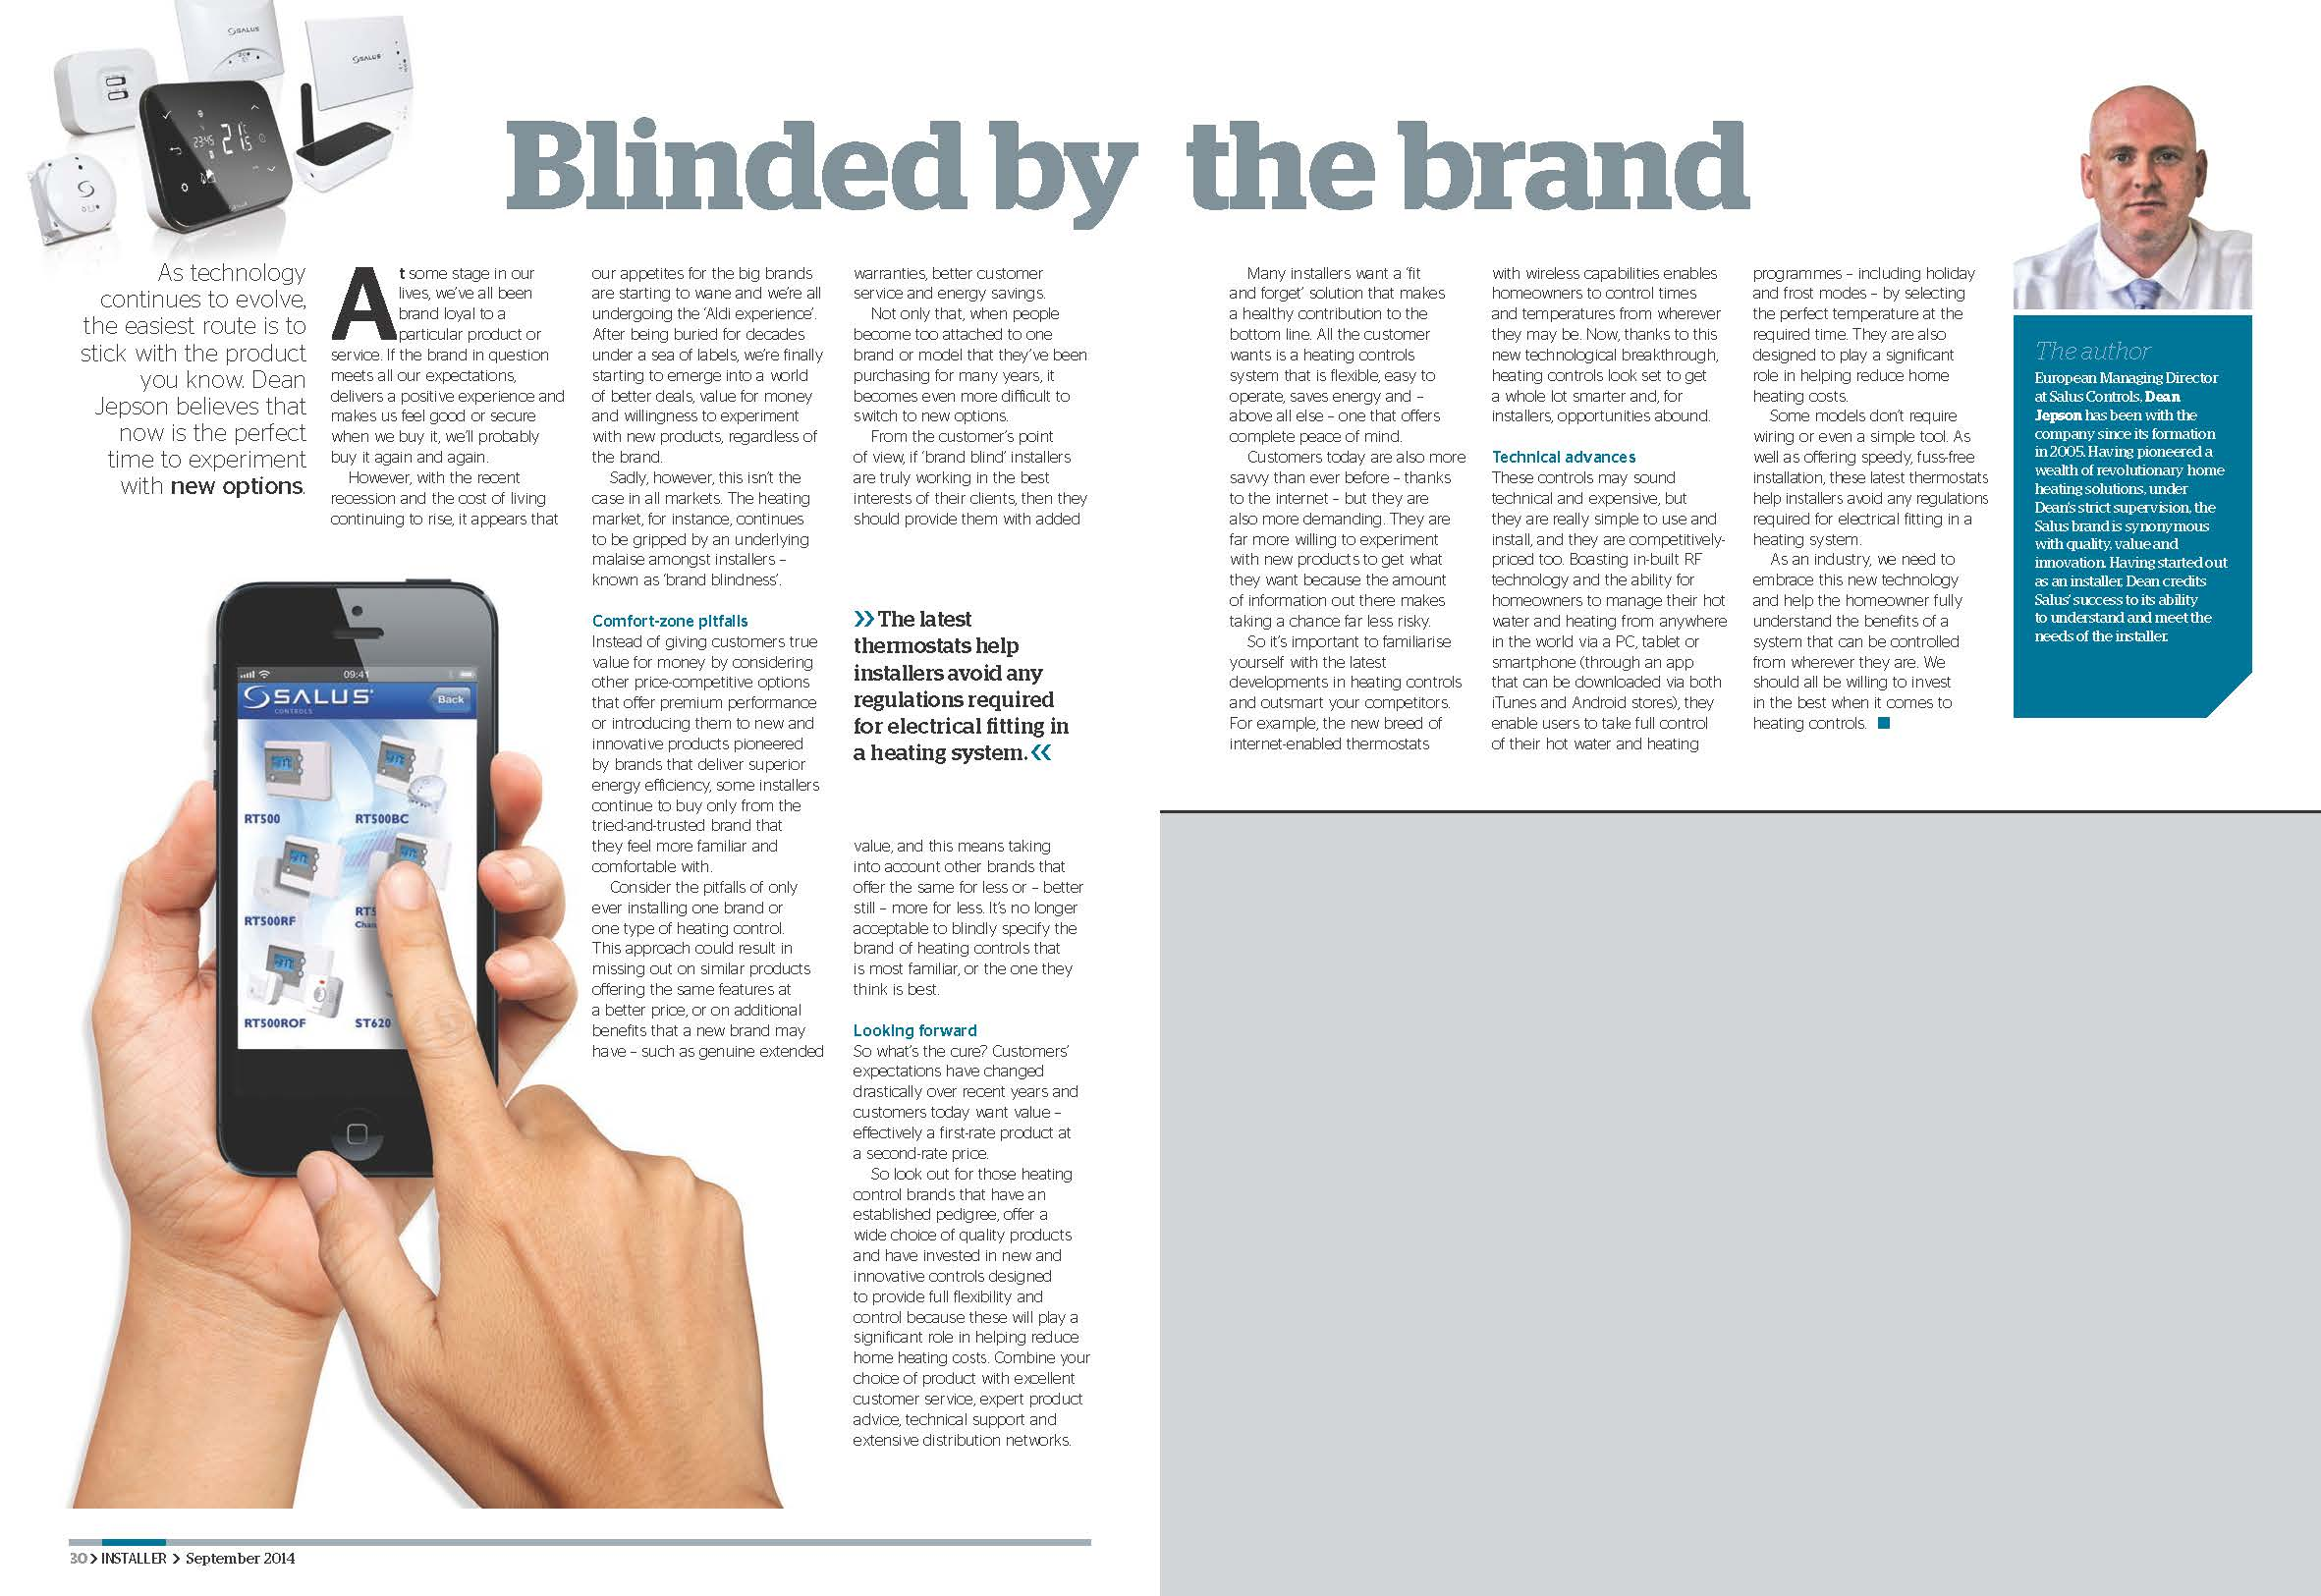 Blinded by the brandweb